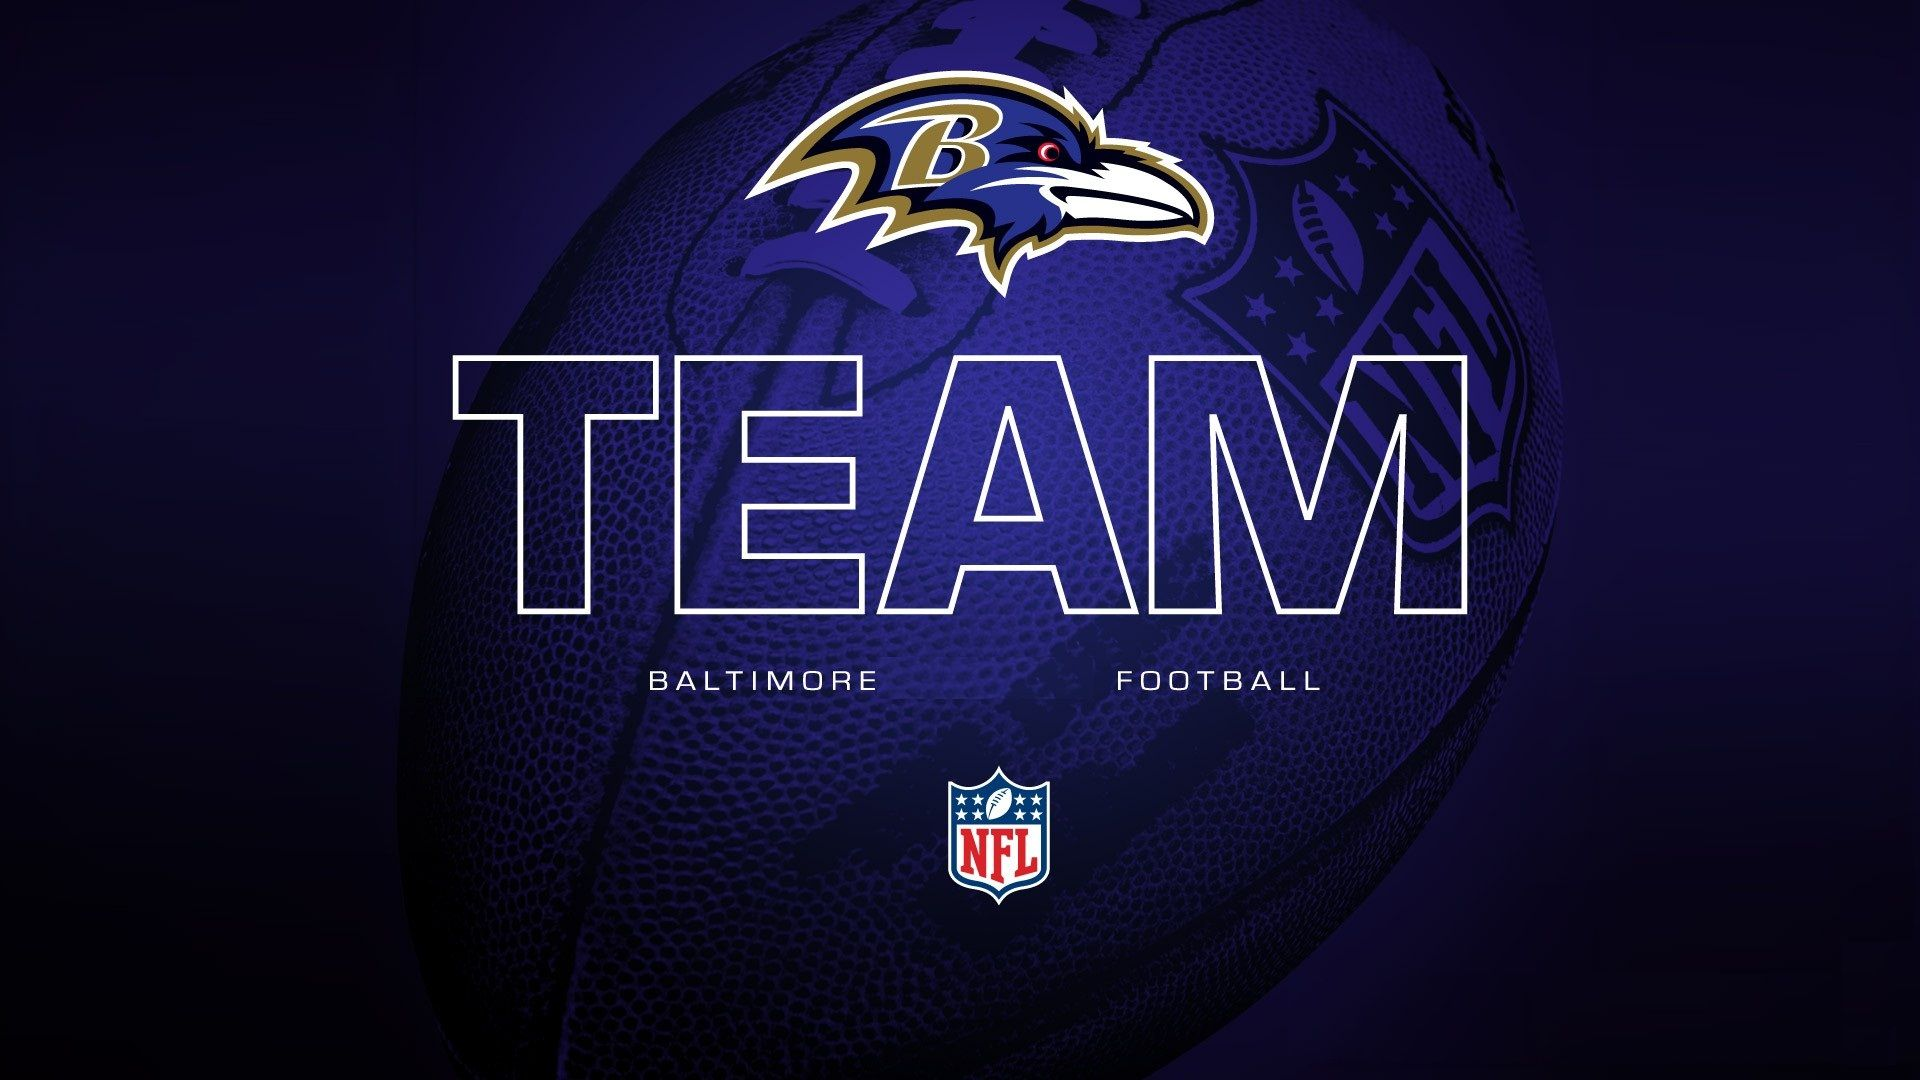 Wallpapers Baltimore Ravens Wallpapers Baltimore ravens 1920x1080